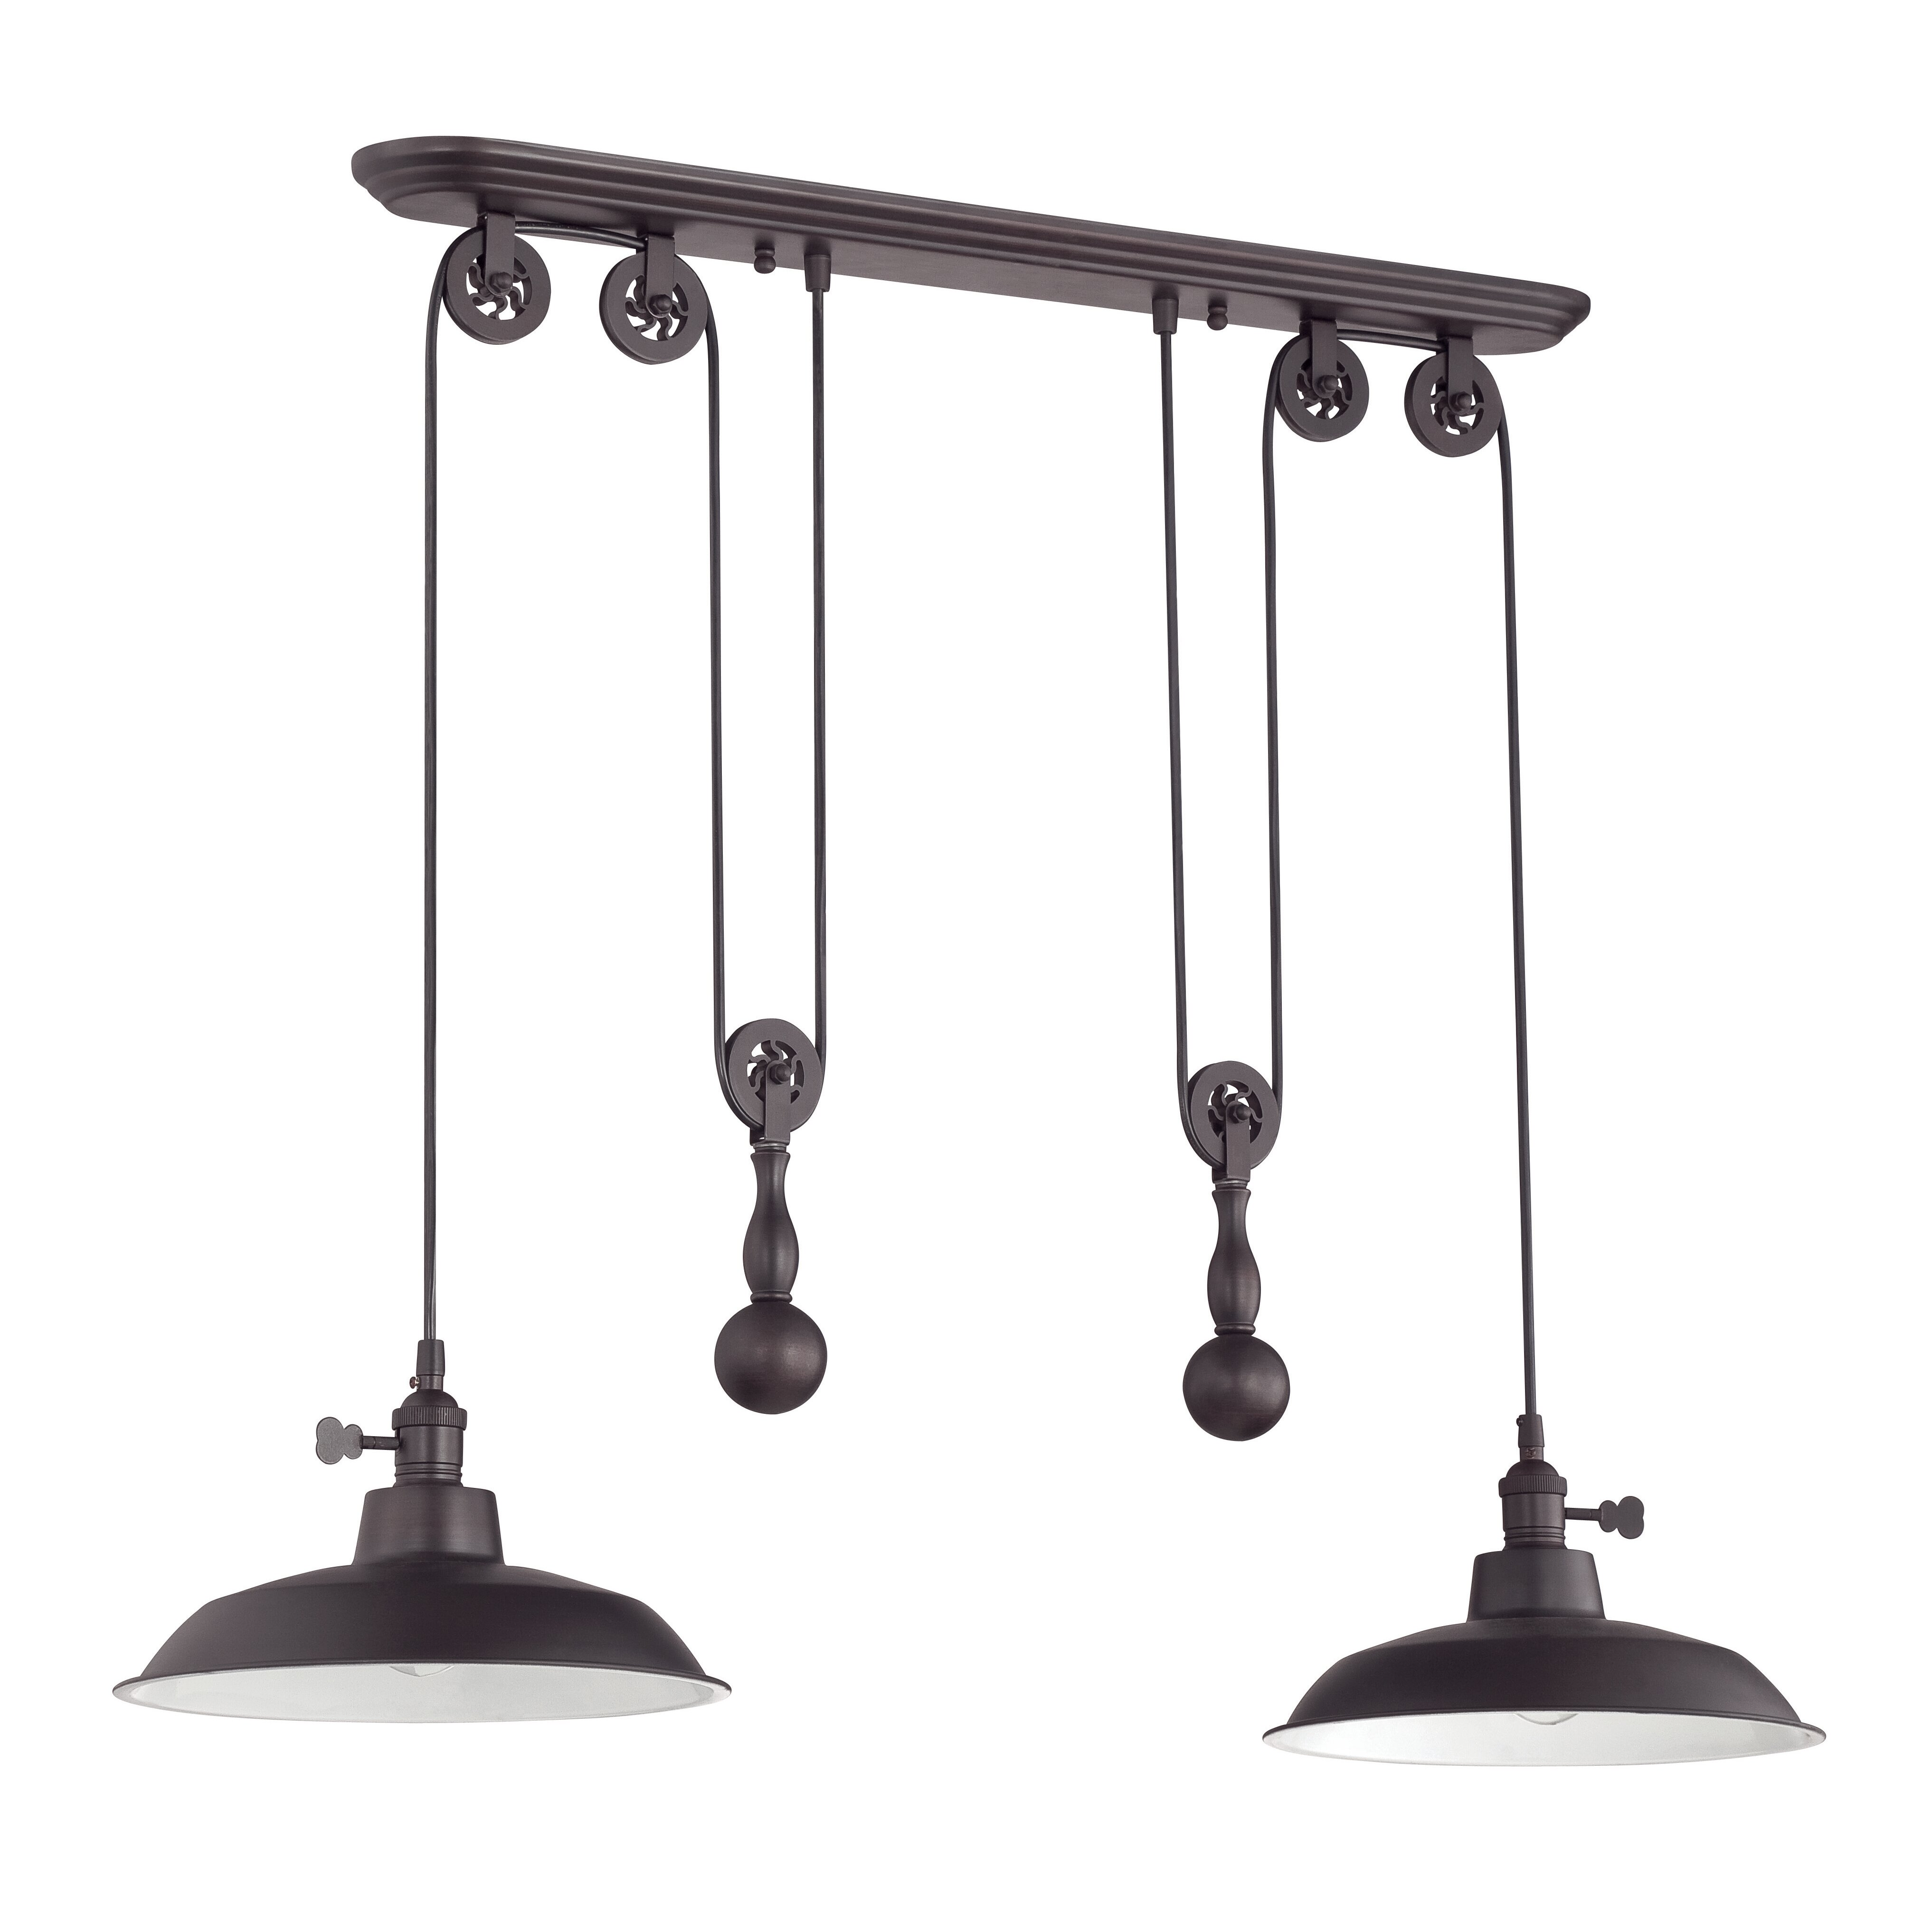 Kitchen Island Pendant Lighting: Craftmade Pulley 2 Light Kitchen Island Pendant & Reviews